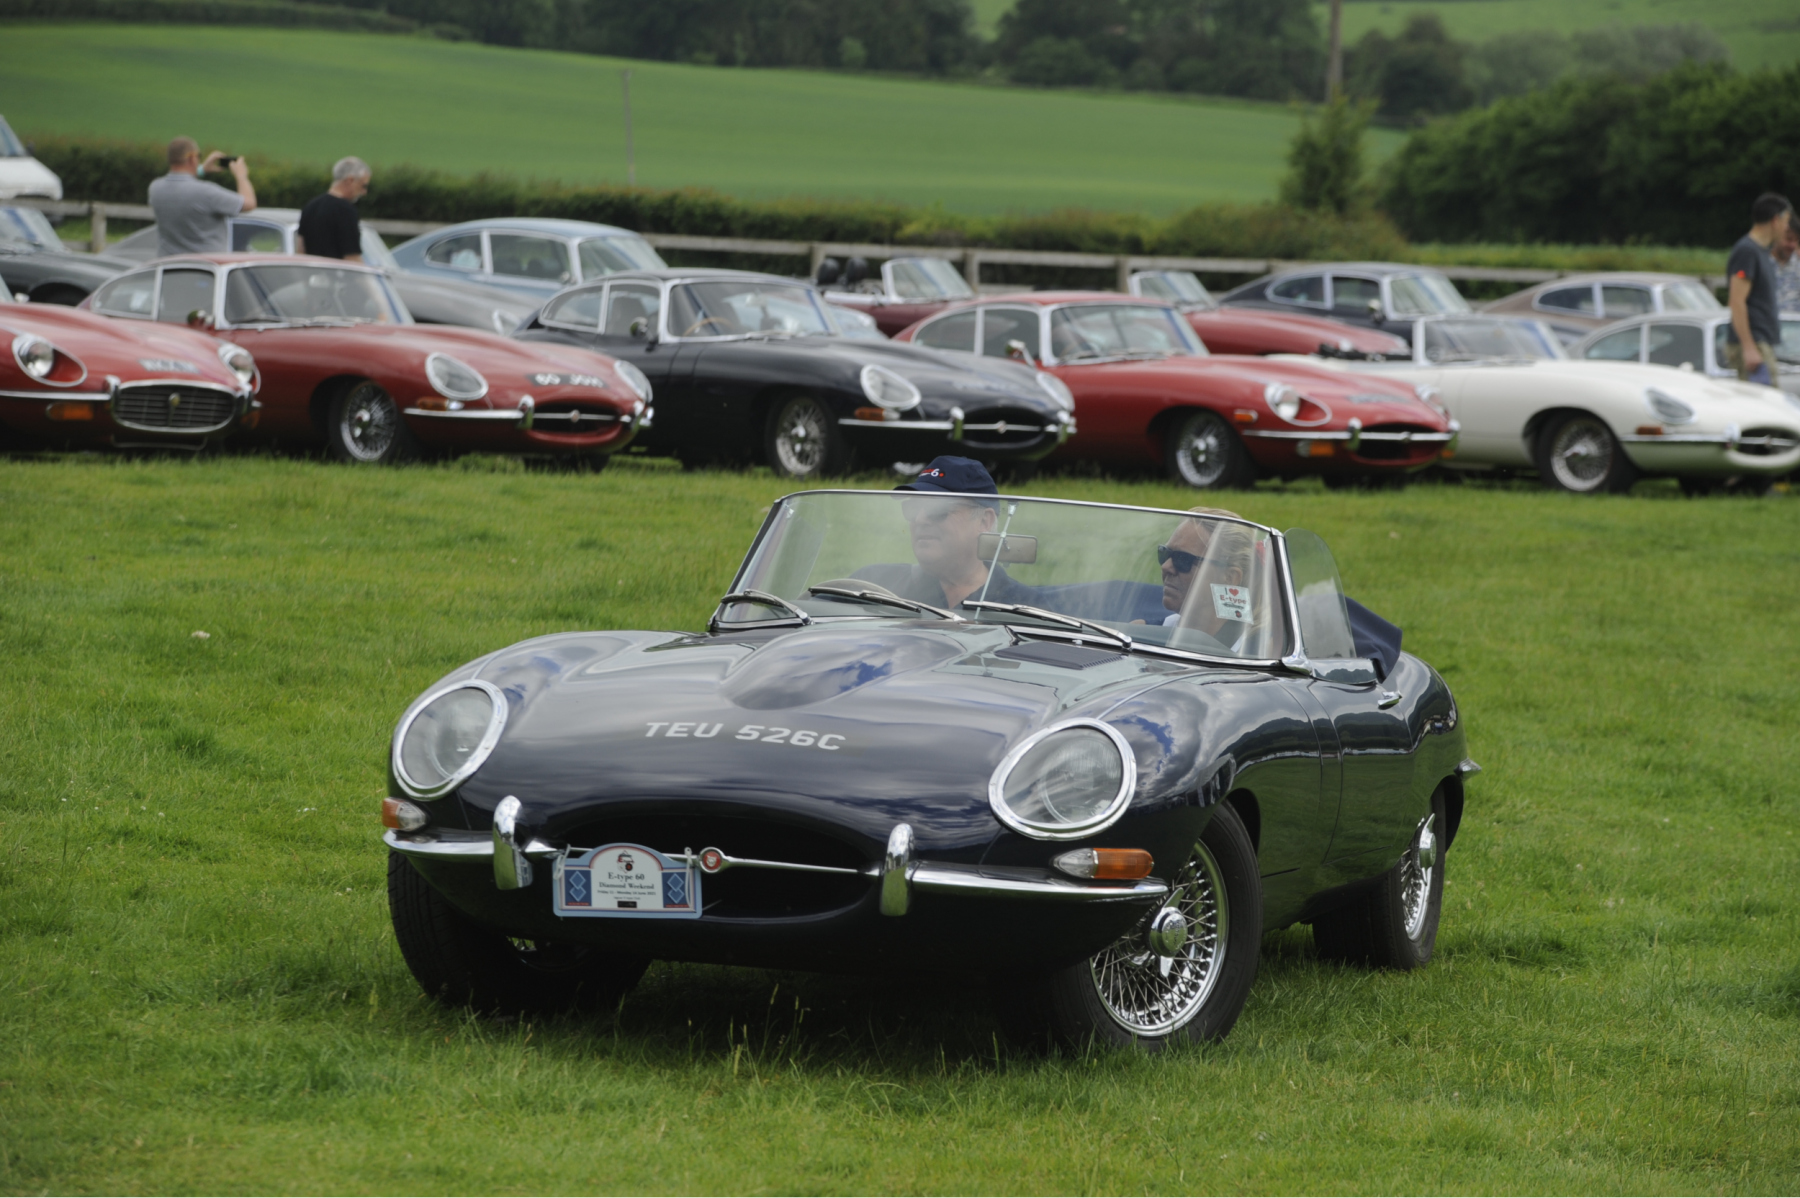 E-type-60-Saturday-photo-by-Abigail-Humphries-242